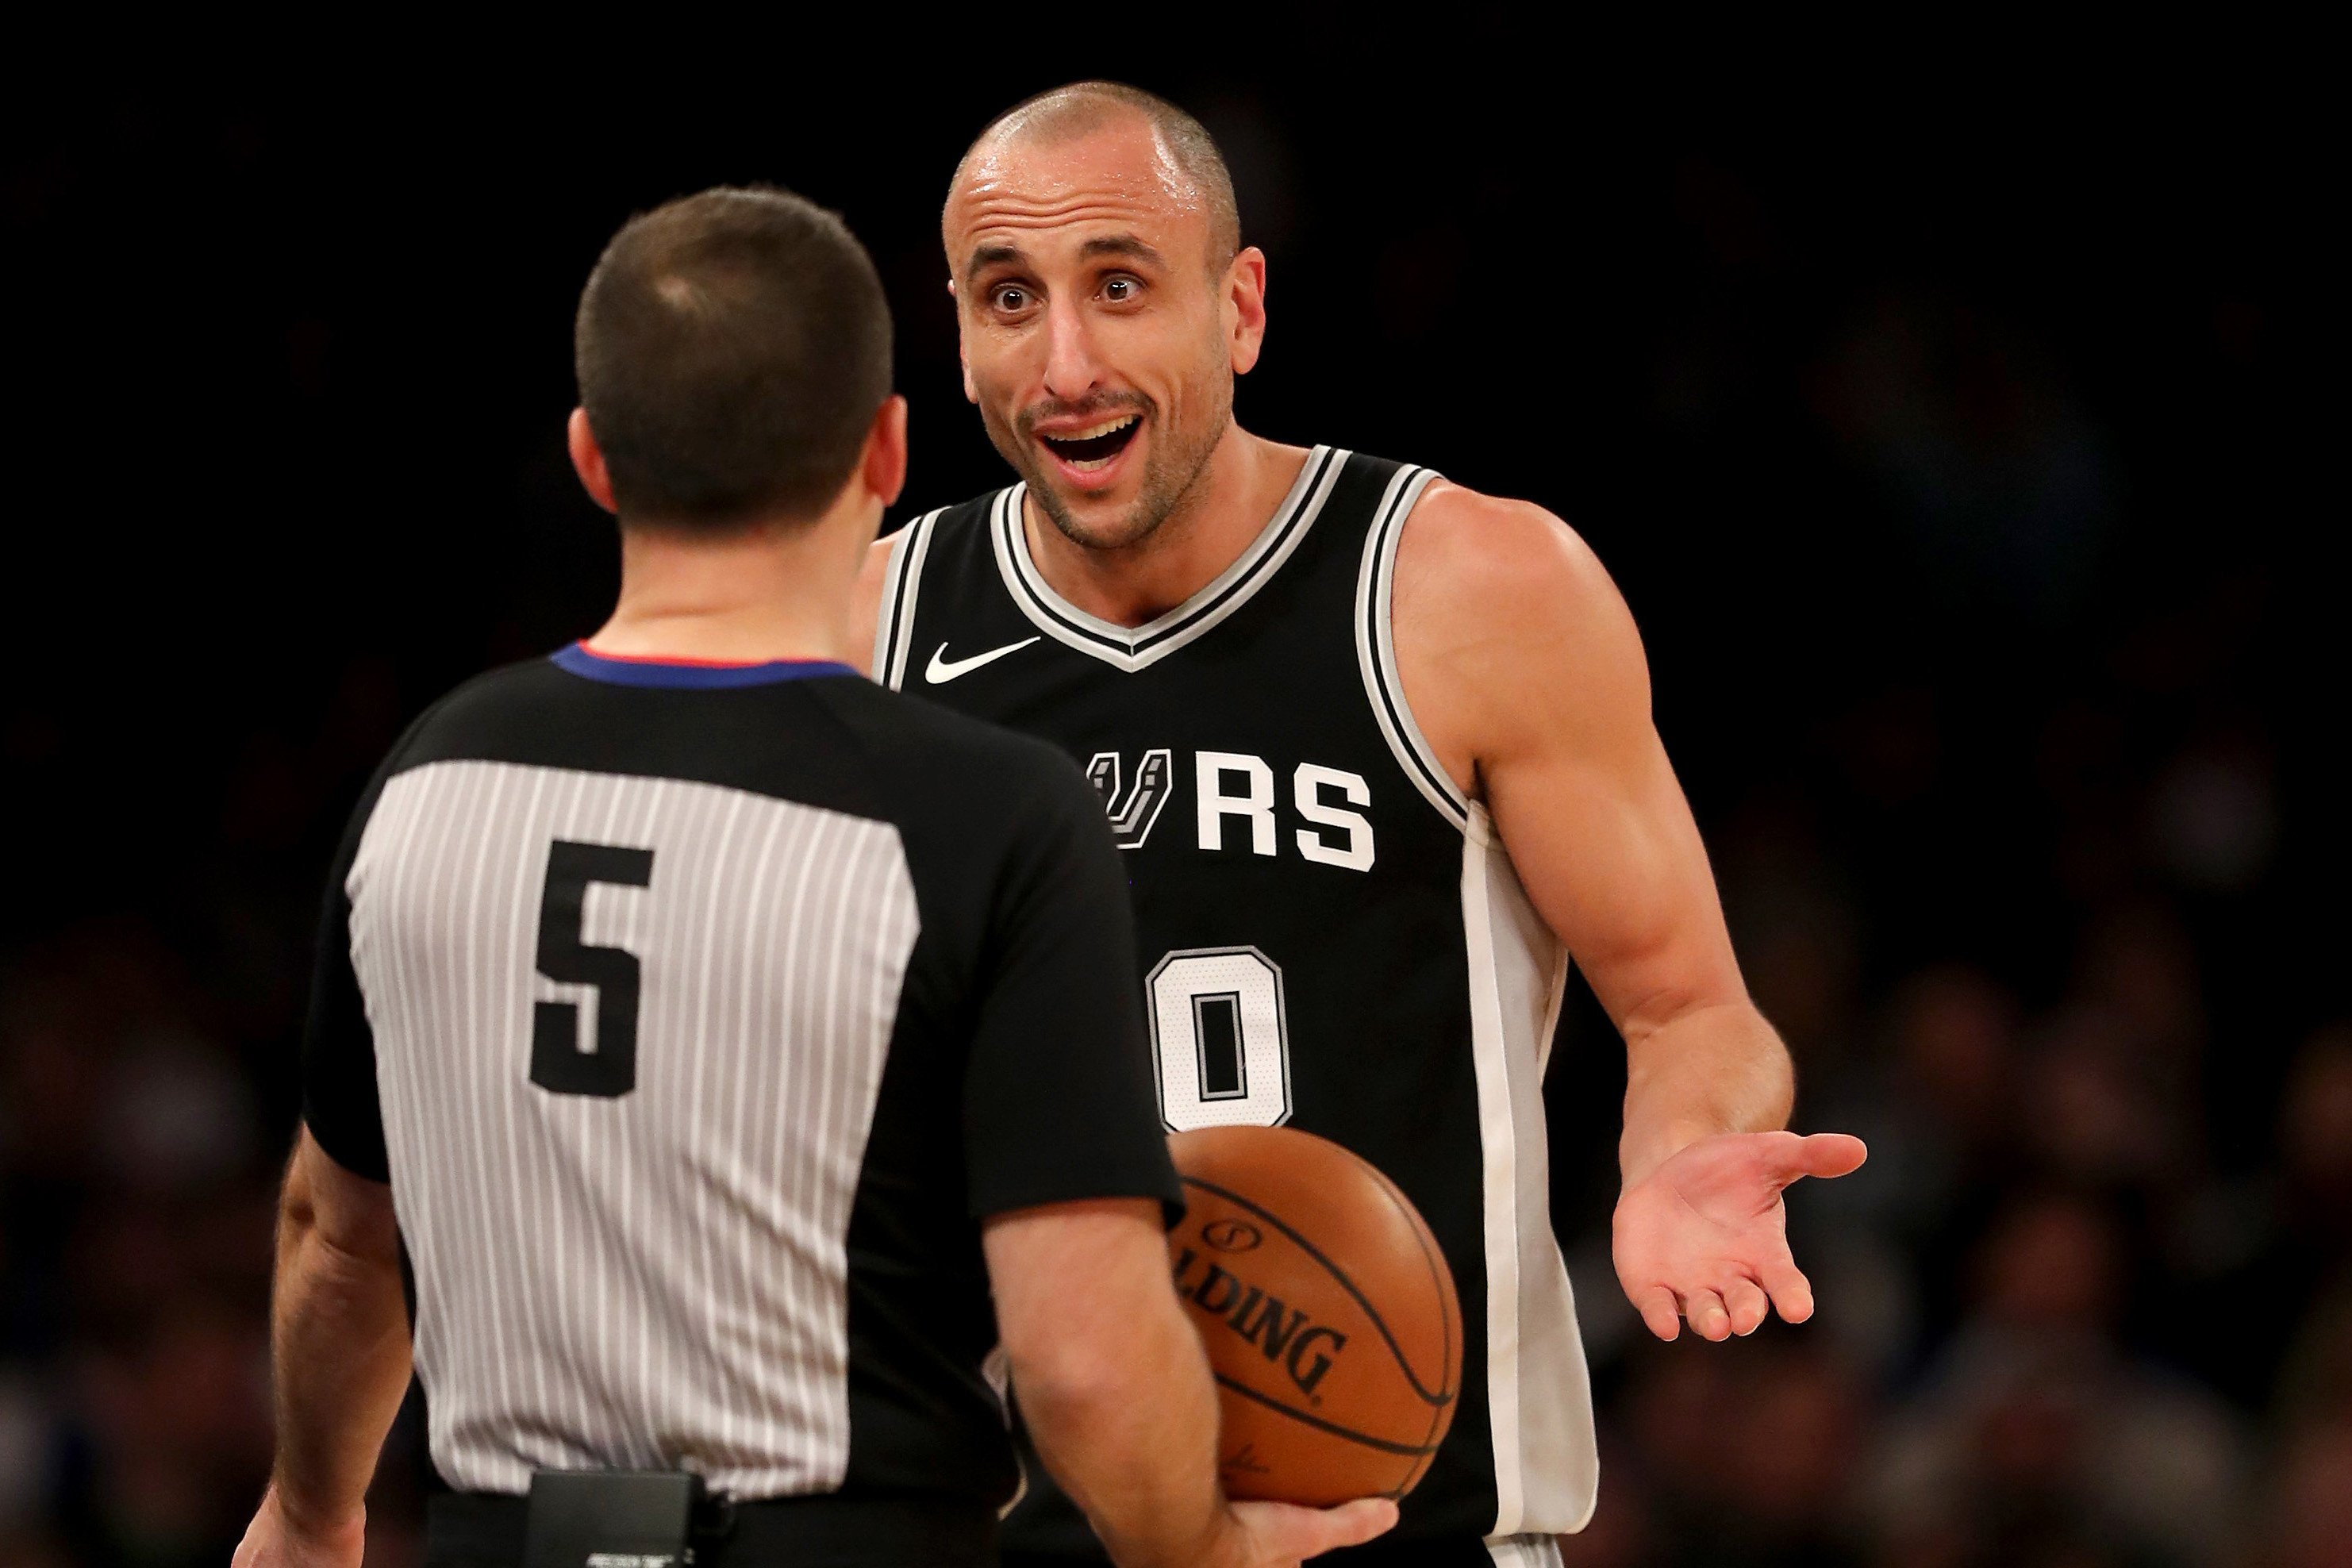 Manu Ginobili conjured some magic for his Garden-invading fans